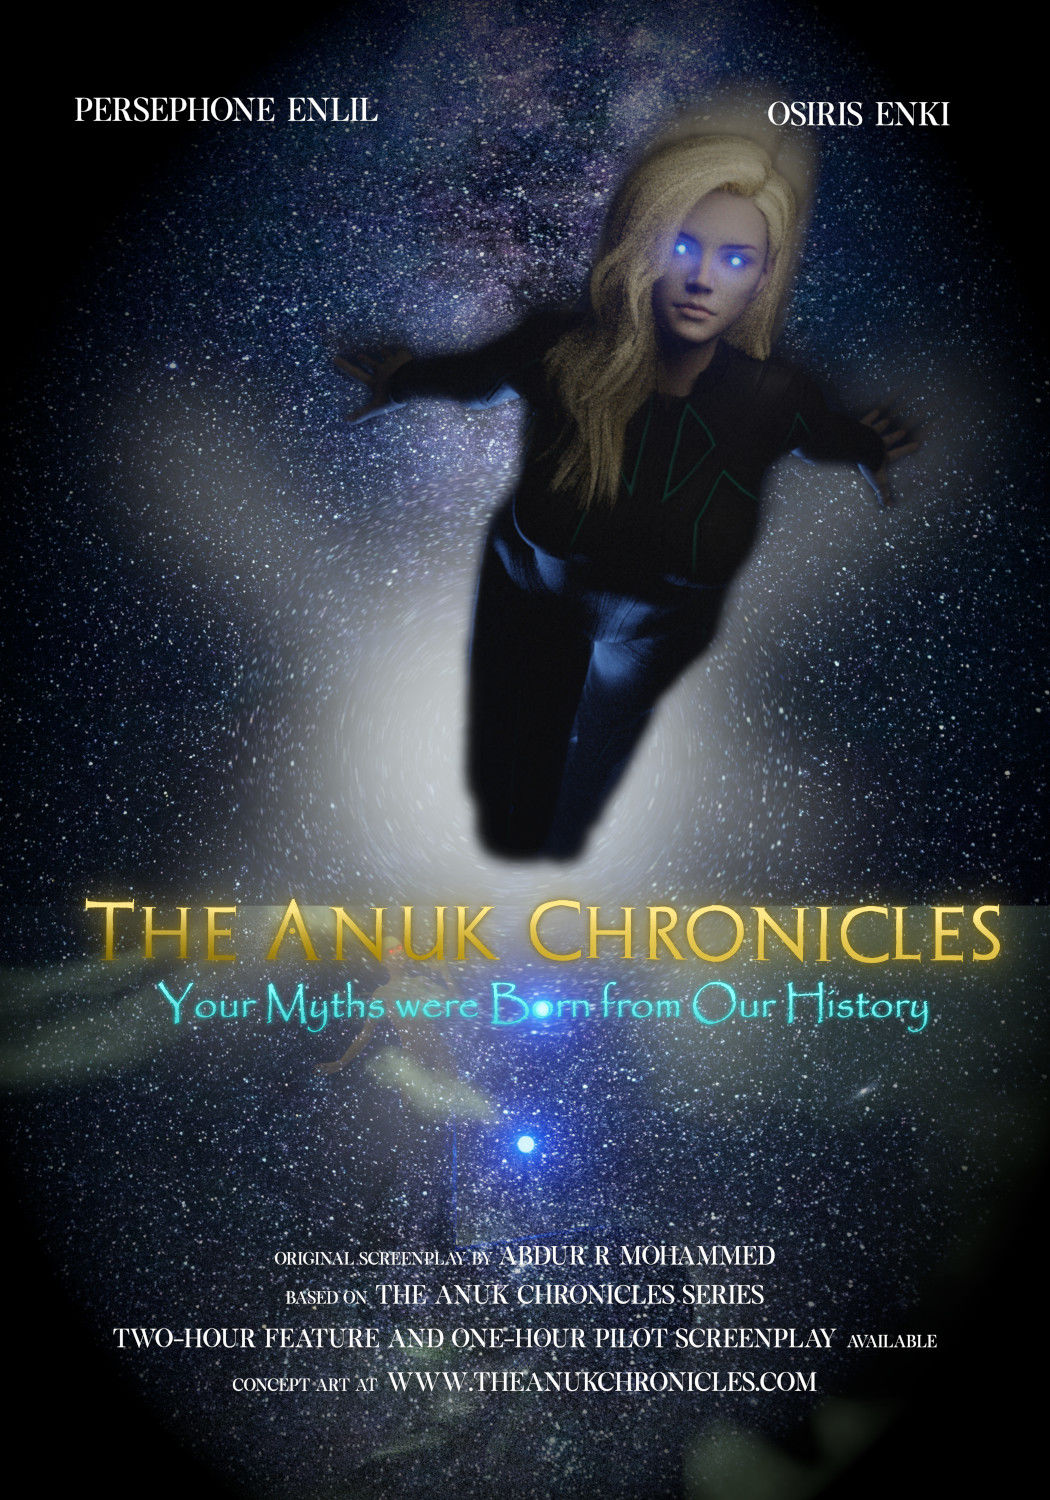 THE ANUK CHRONICLES